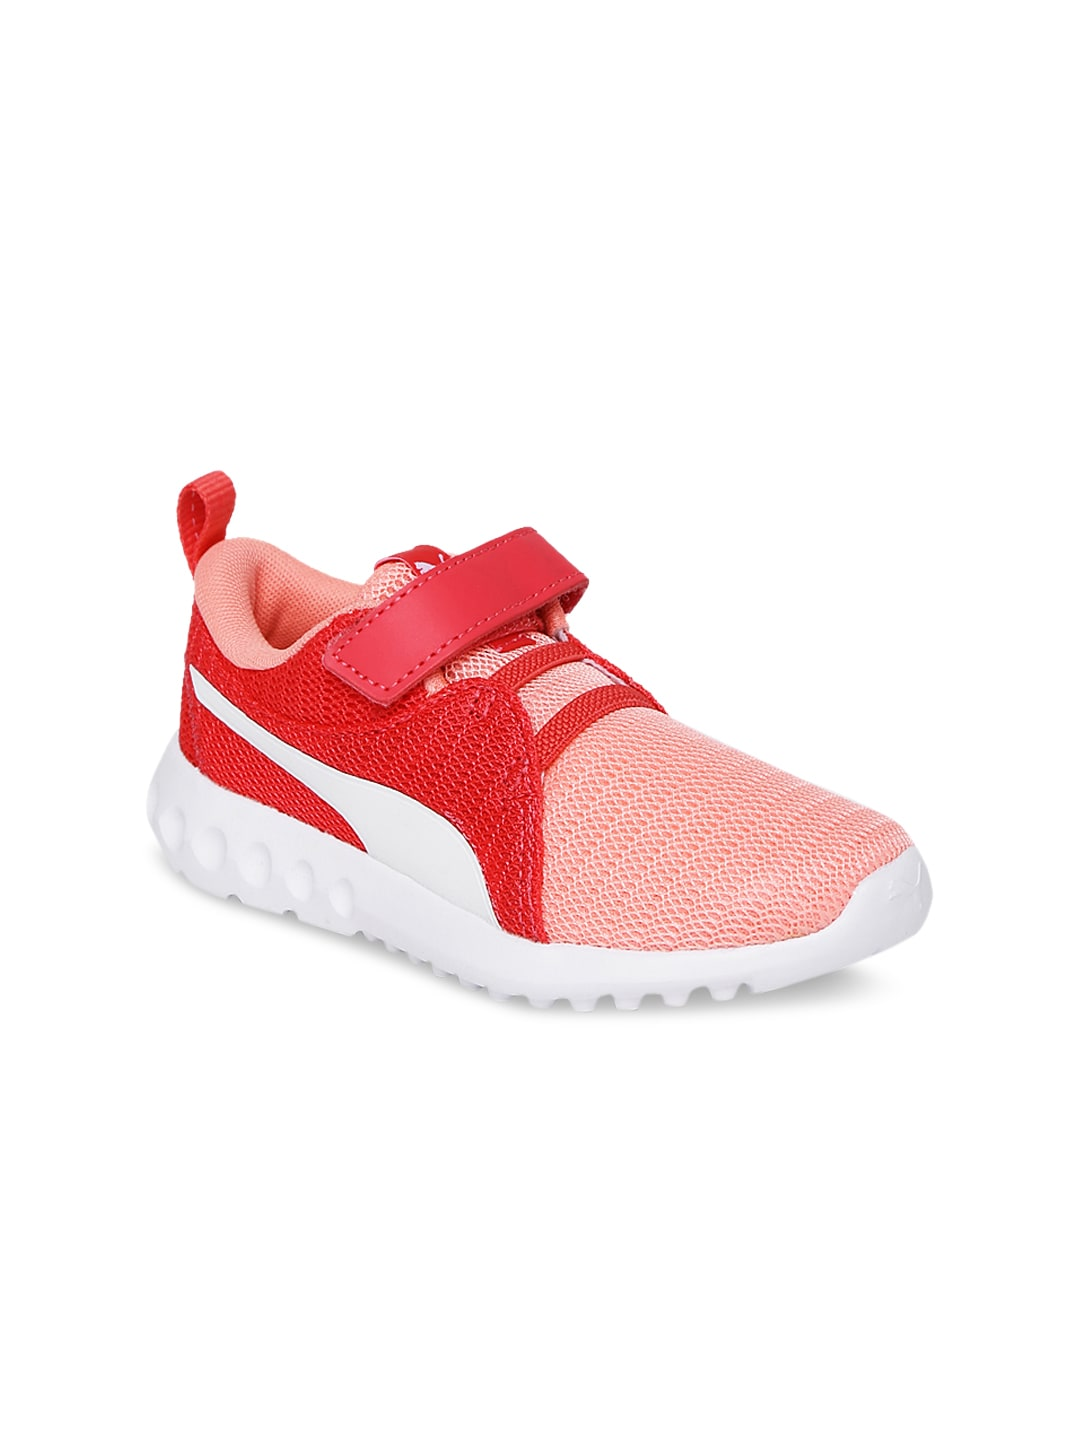 647f2164eed1 Coral Casual Shoes - Buy Coral Casual Shoes online in India